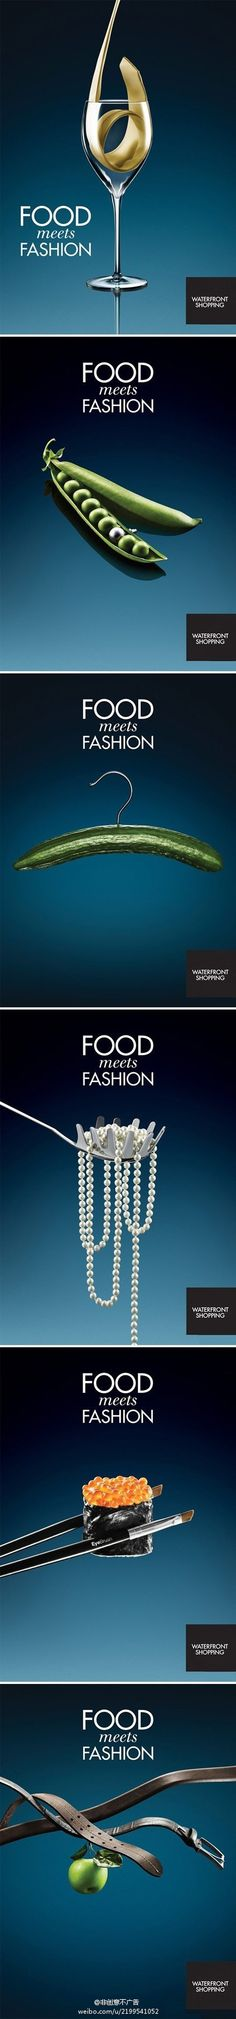 When food meets fashion...